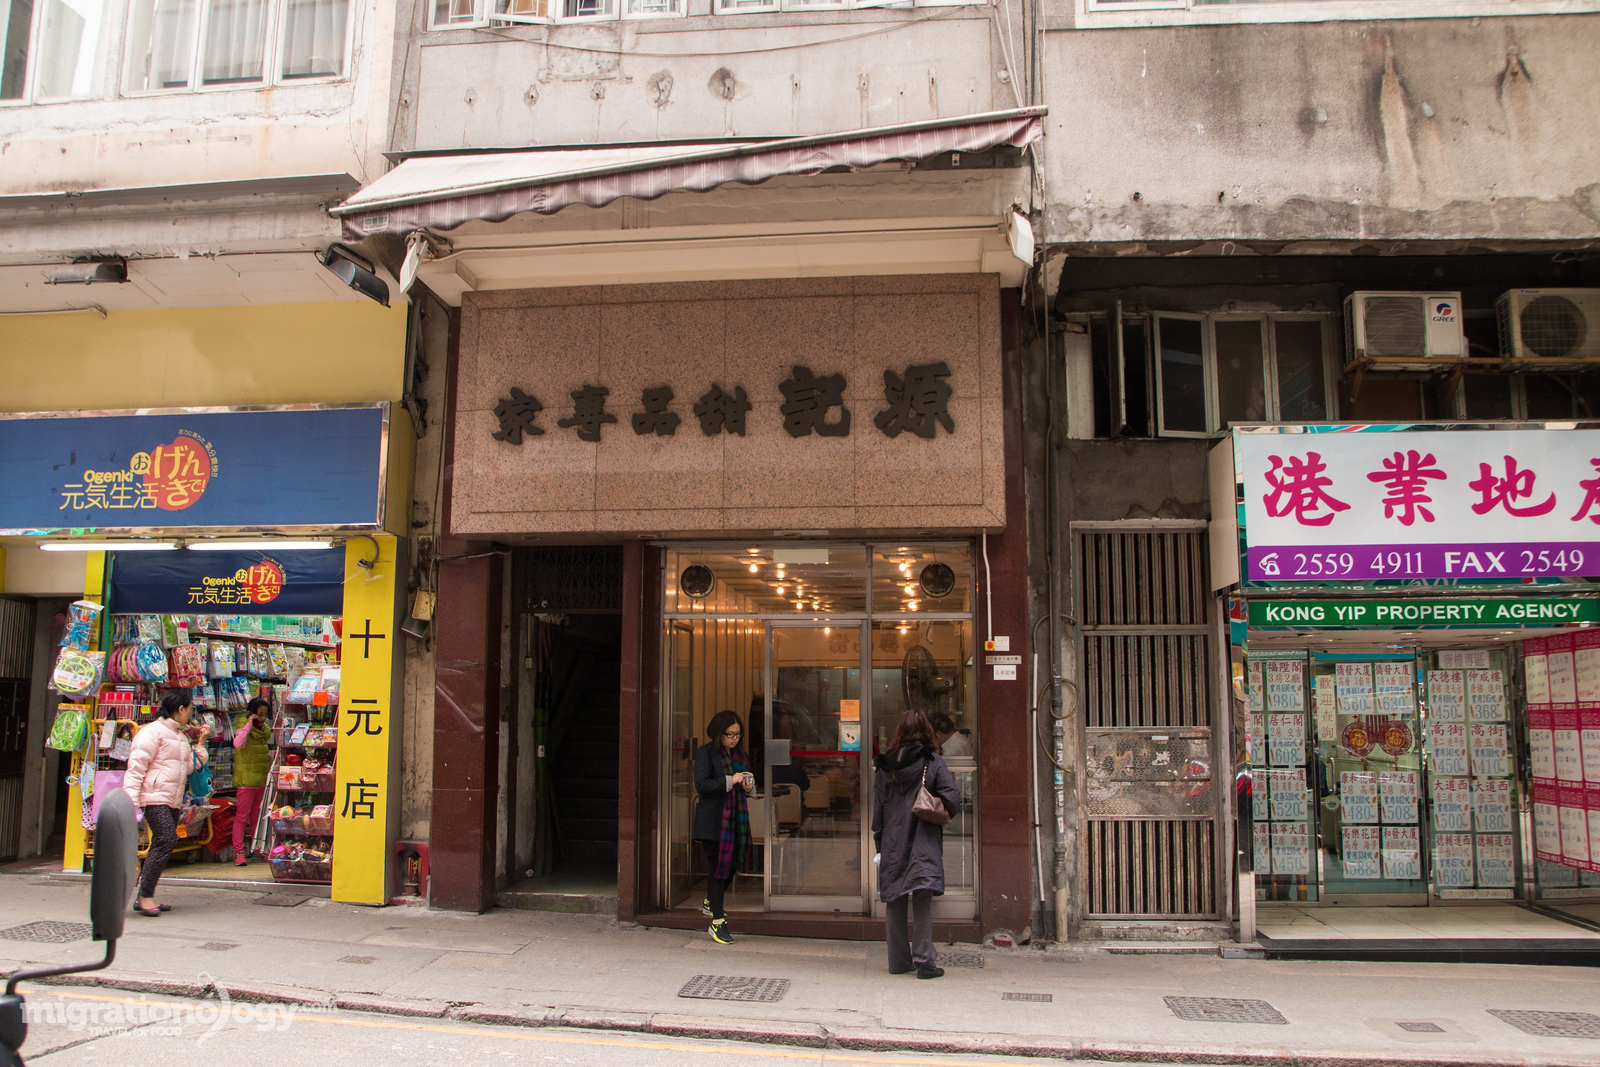 Yuen Kee dessert shop in Hong Kong